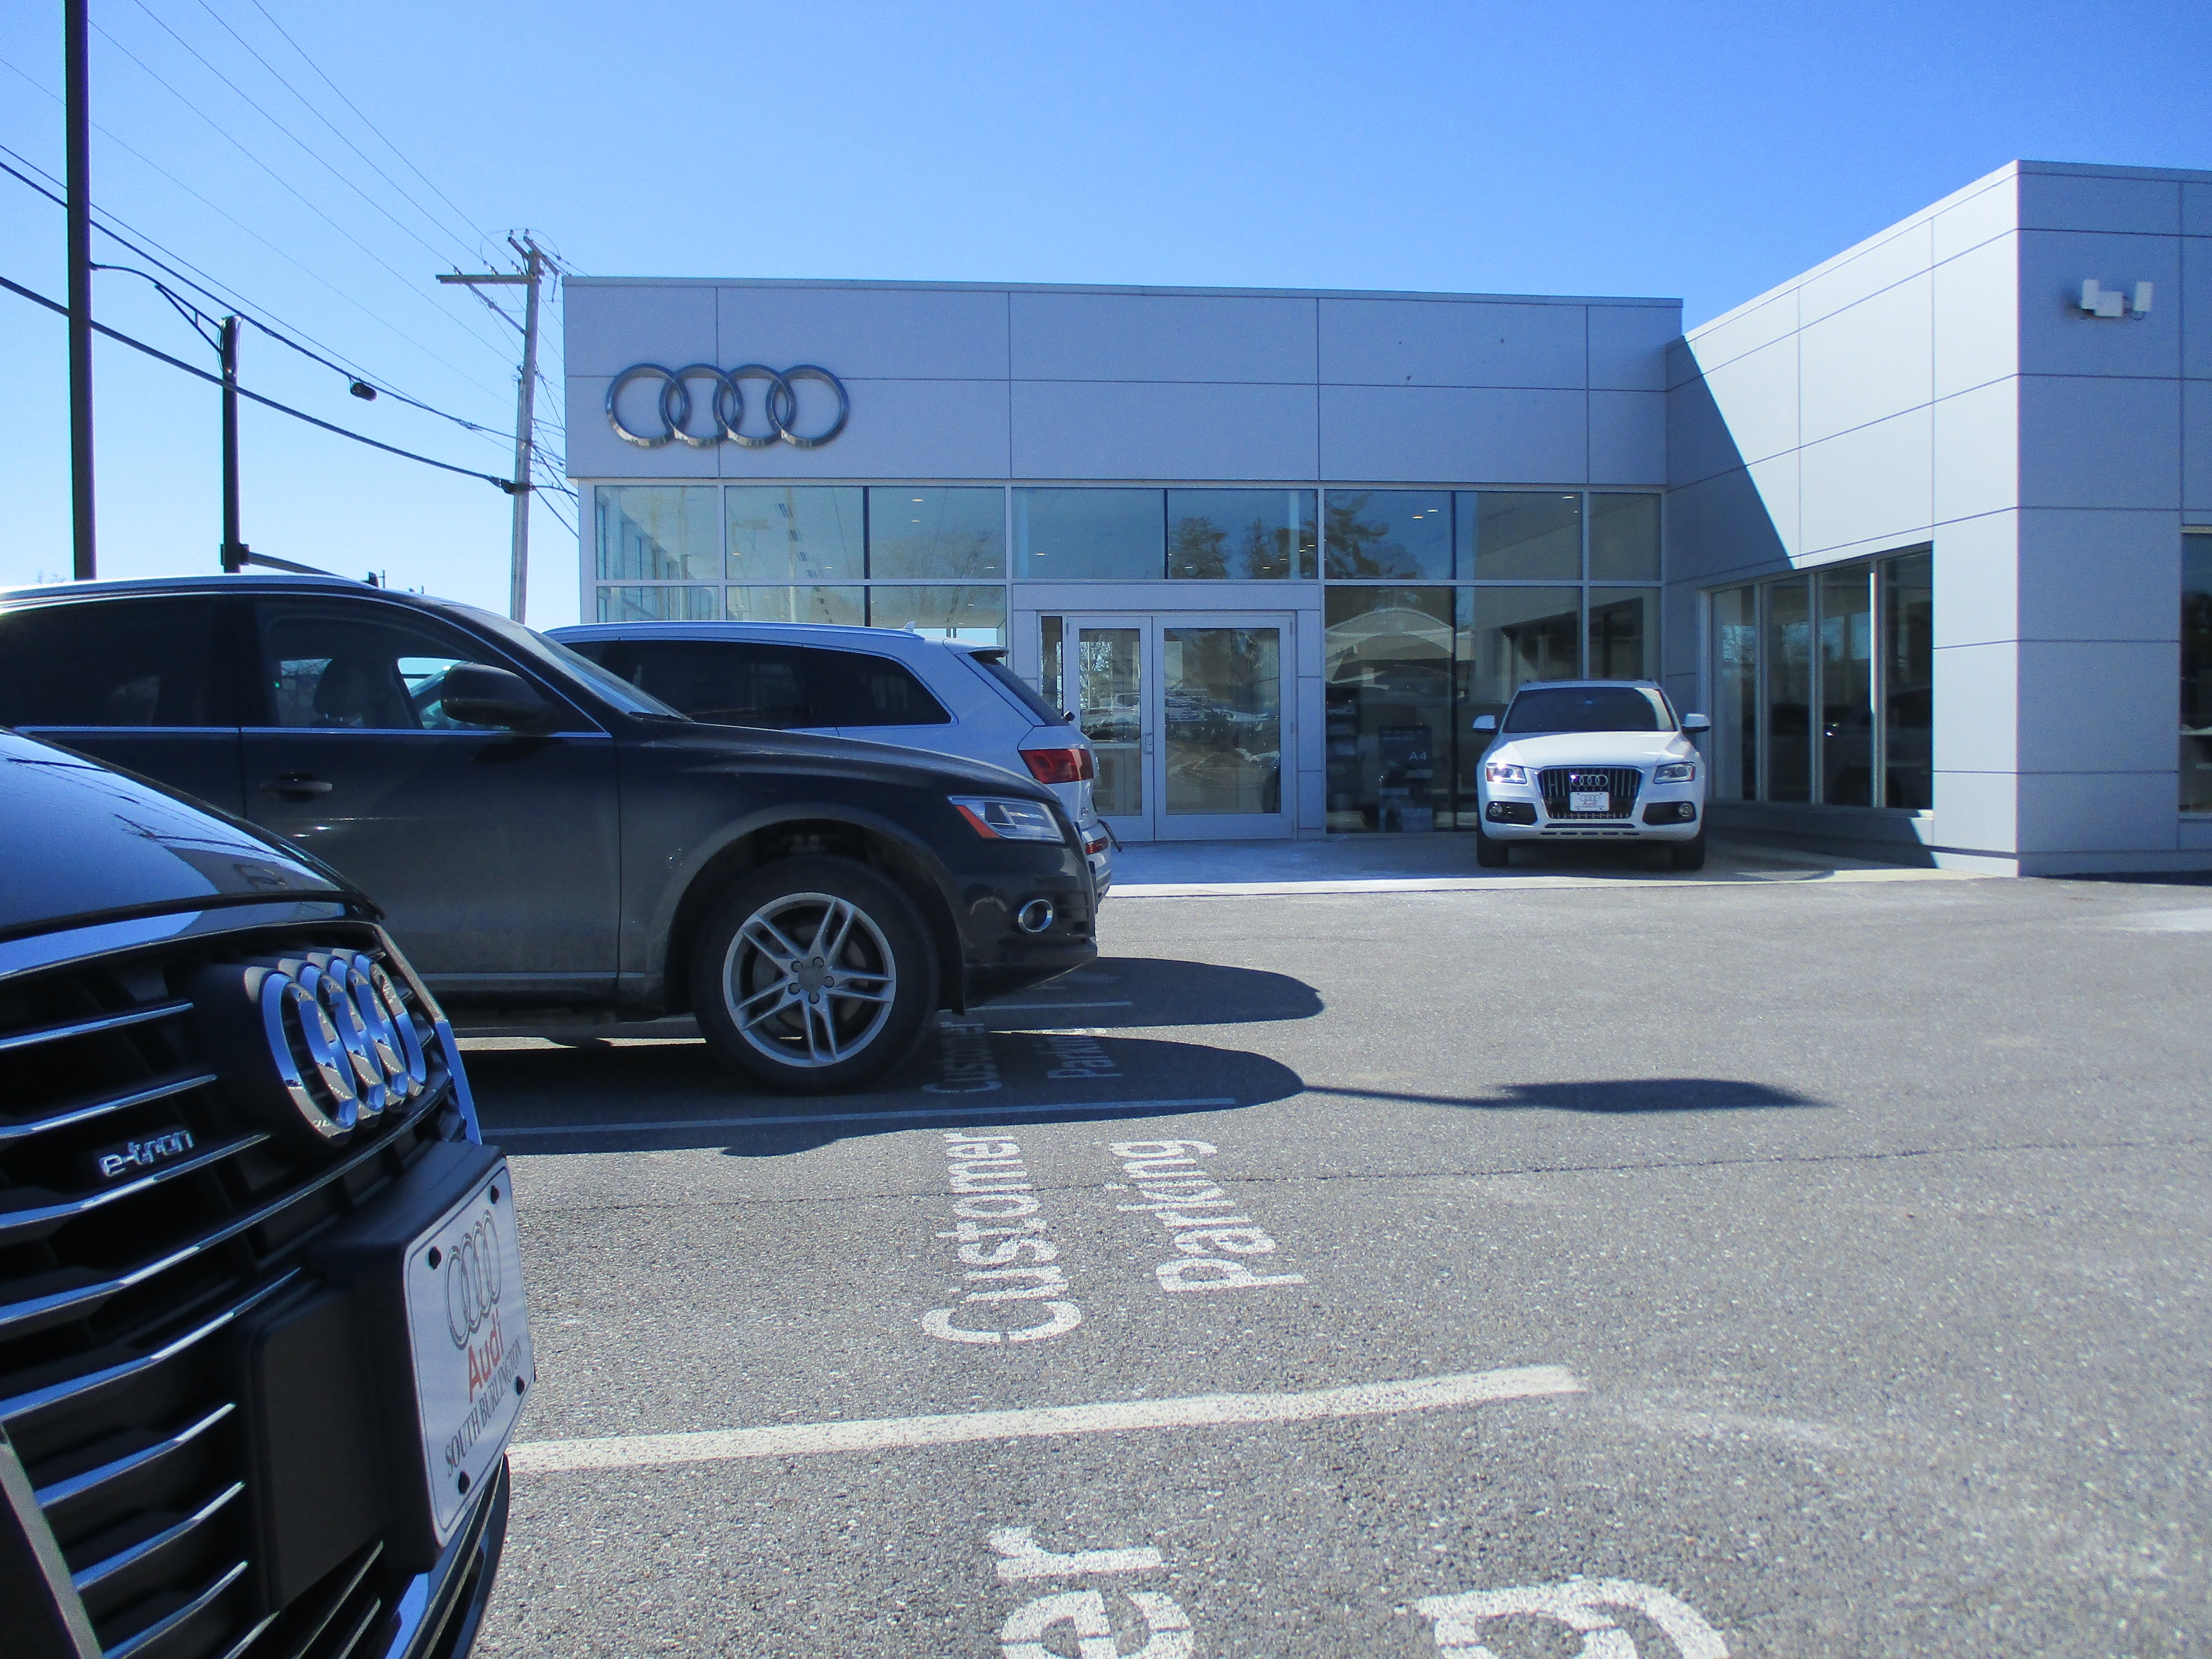 located on the eastern shore of historic lake champlain in south burlington vermont audi south burlington is part of the shearer auto group locally owned